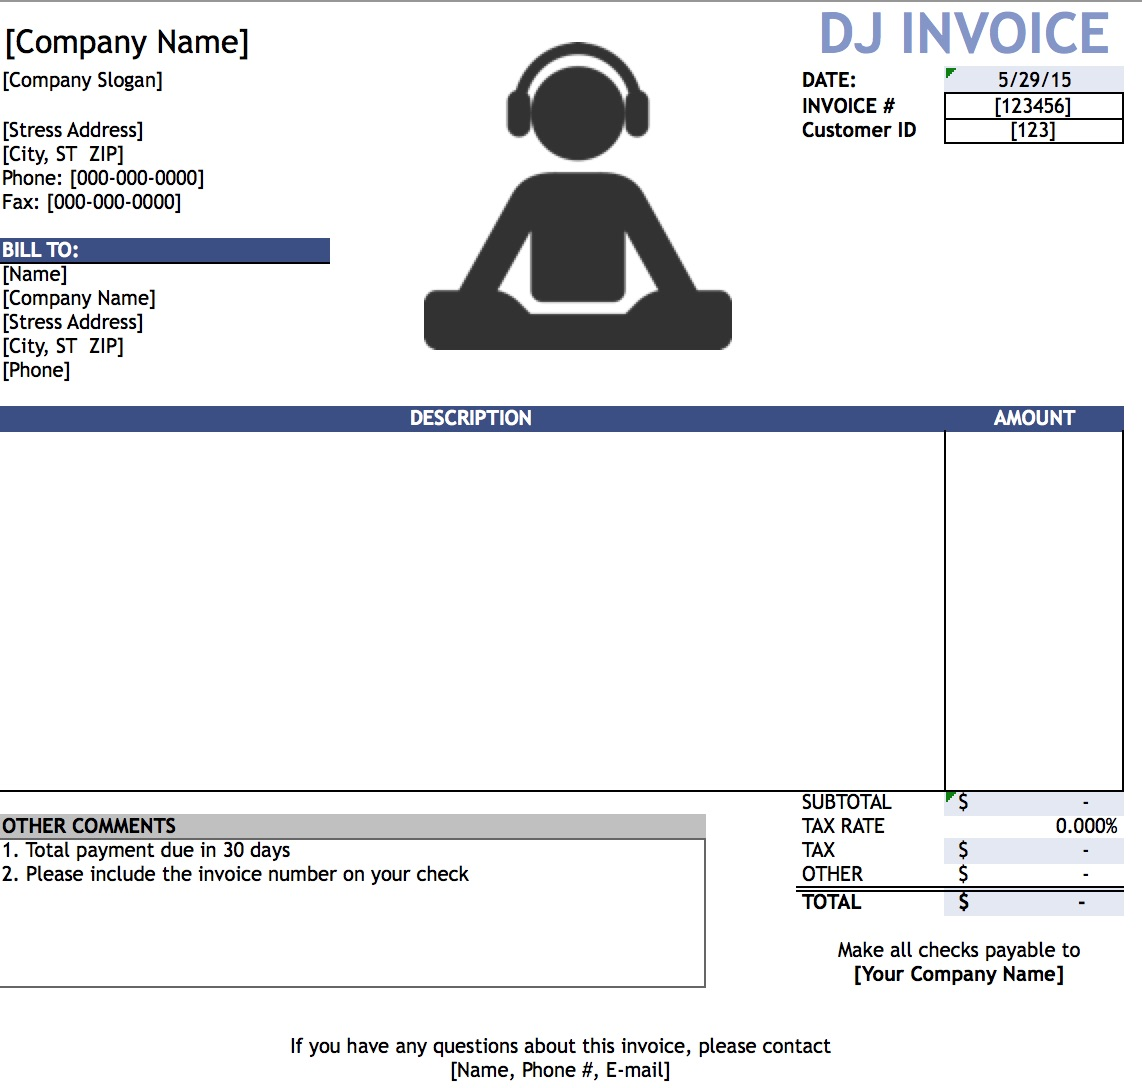 Free DJ Disc Jockey Invoice Template Excel PDF Word Doc - Invoice sample word for service business